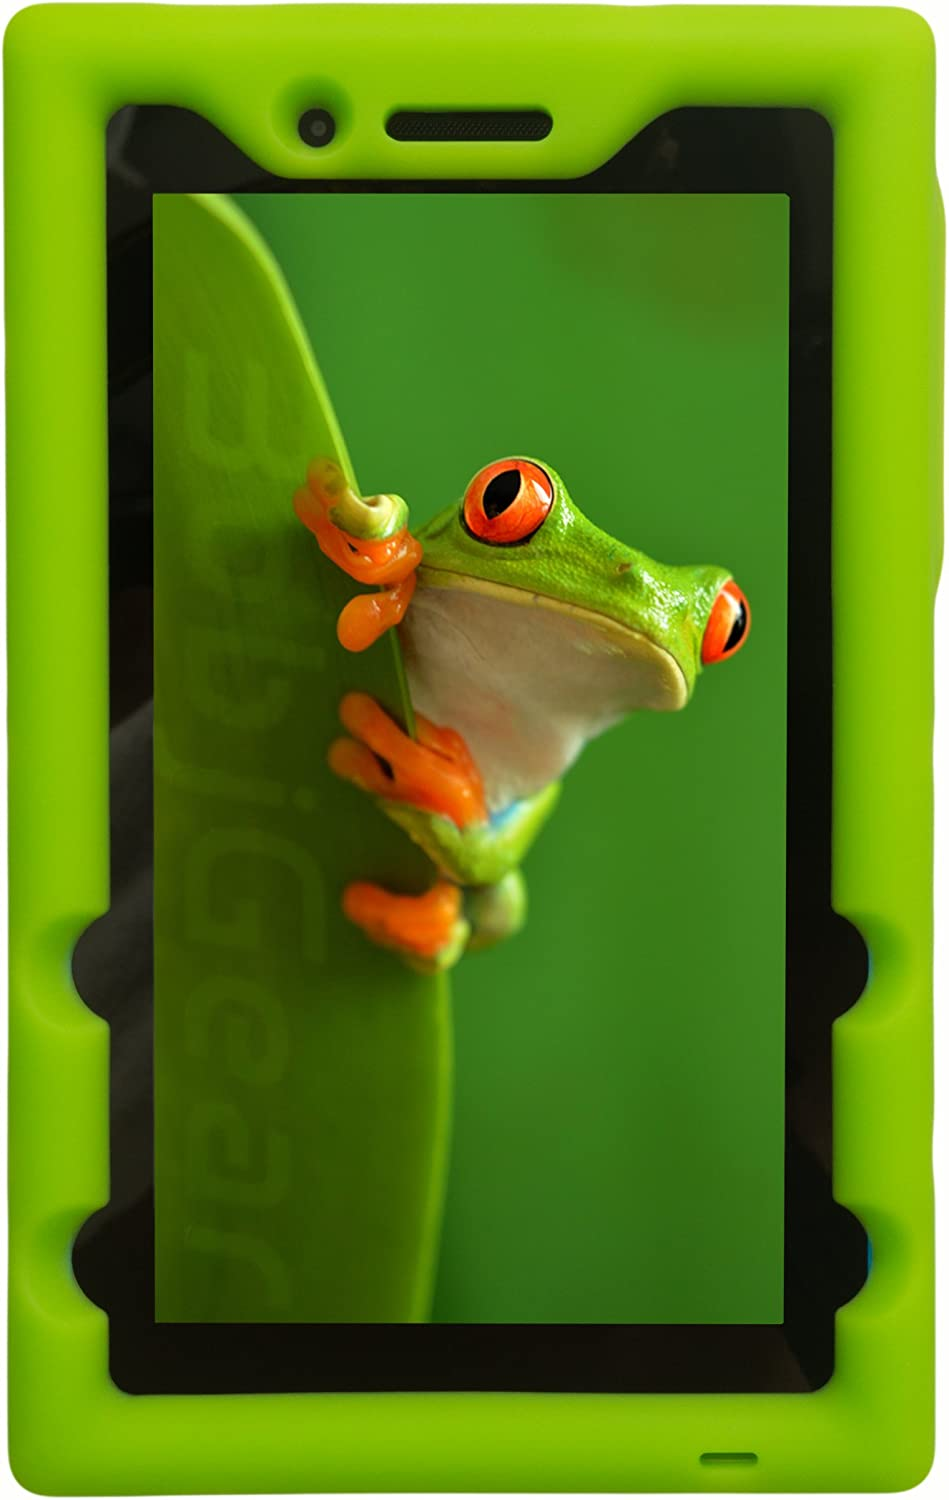 Bobj Rugged Case for Lenovo Tab 3 Essential TB3-710F TB3-710I (NOT for Tab 7 Essential TB-7304F or Any Other Lenovo Model) - BobjGear - Venting - Sound Amplification - Kid Friendly (Gotcha Green)